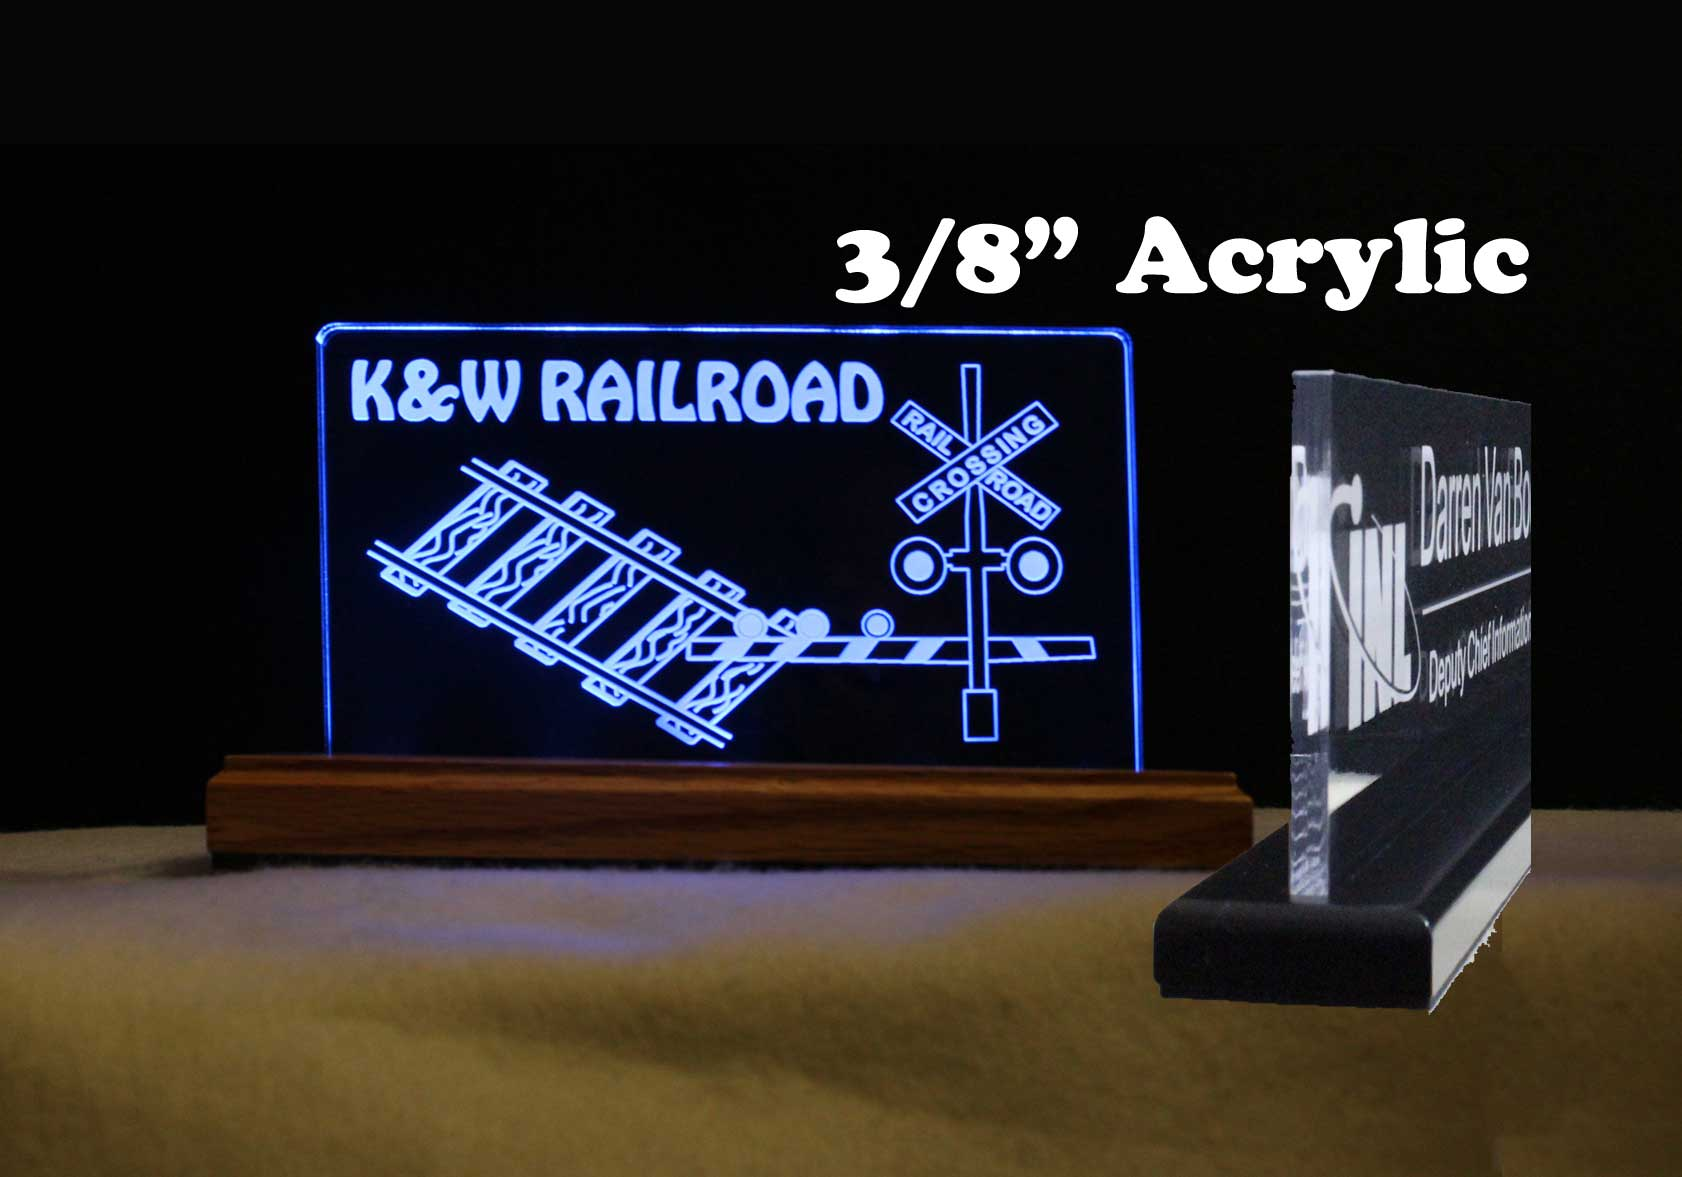 "Kids USB - 110V Personalized Train, Railroad Crossing Table Sign 7"" x 4"""